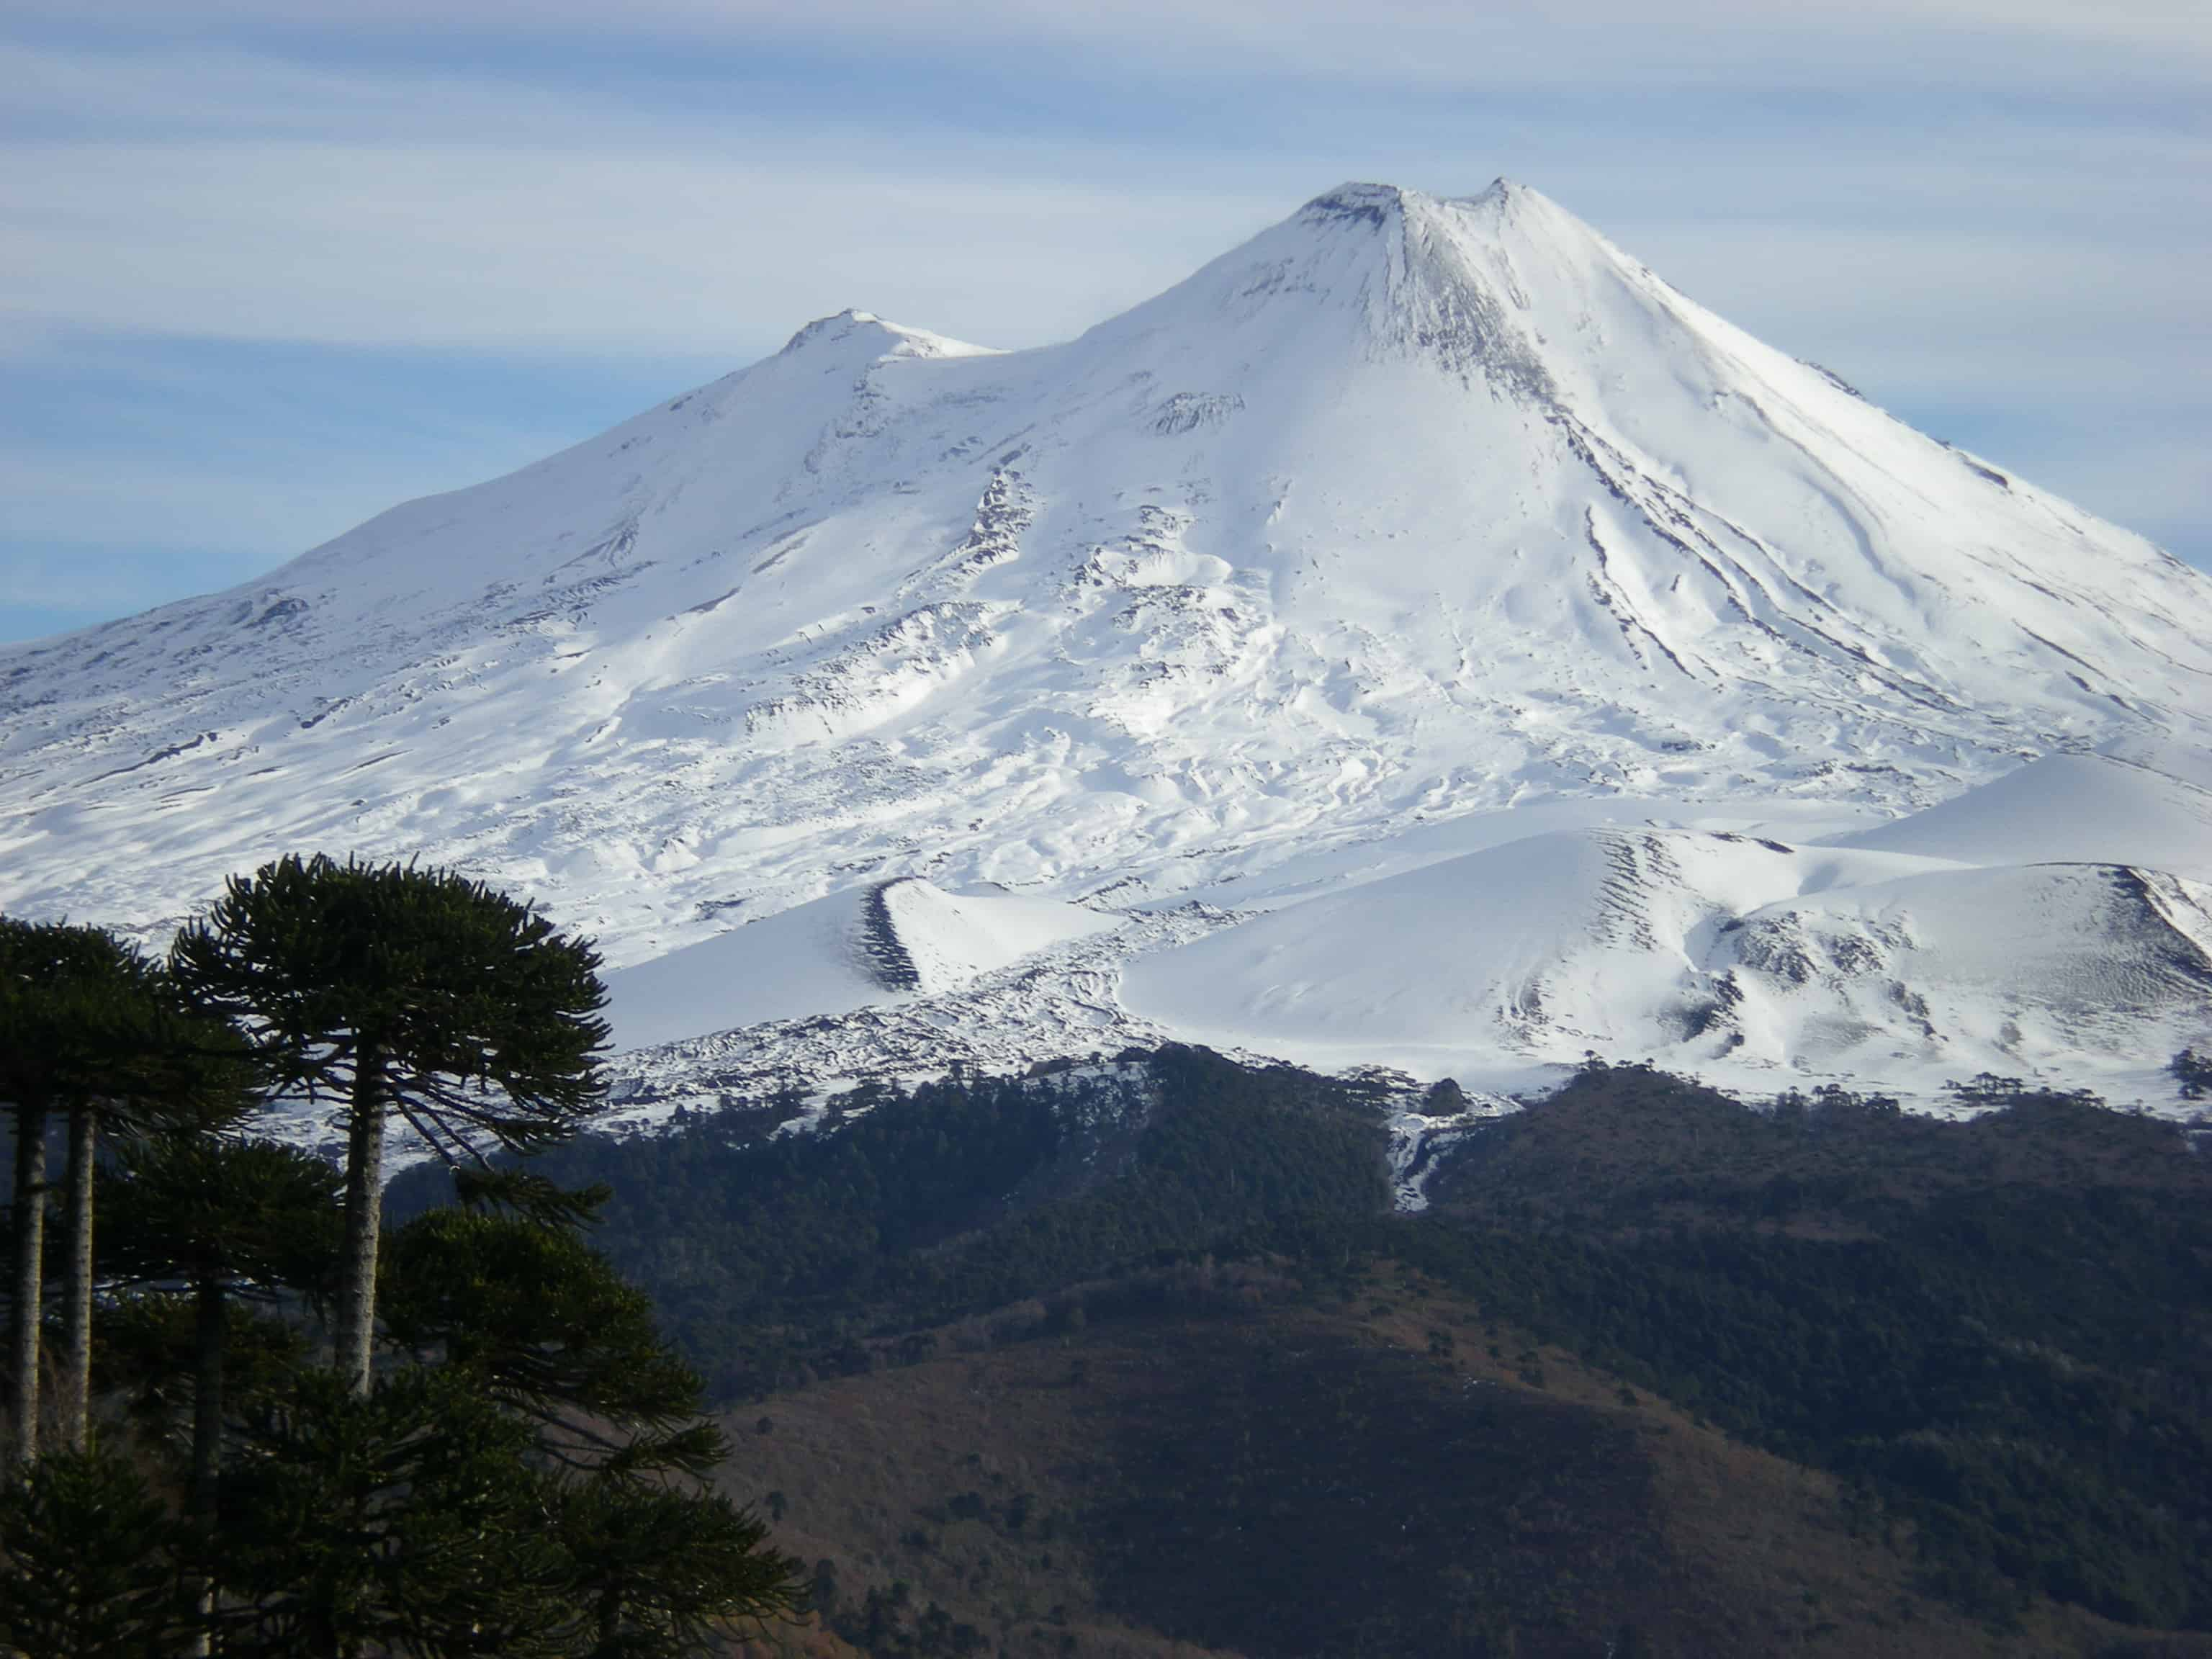 Hiking trails around Pucon – The lake & volcano district